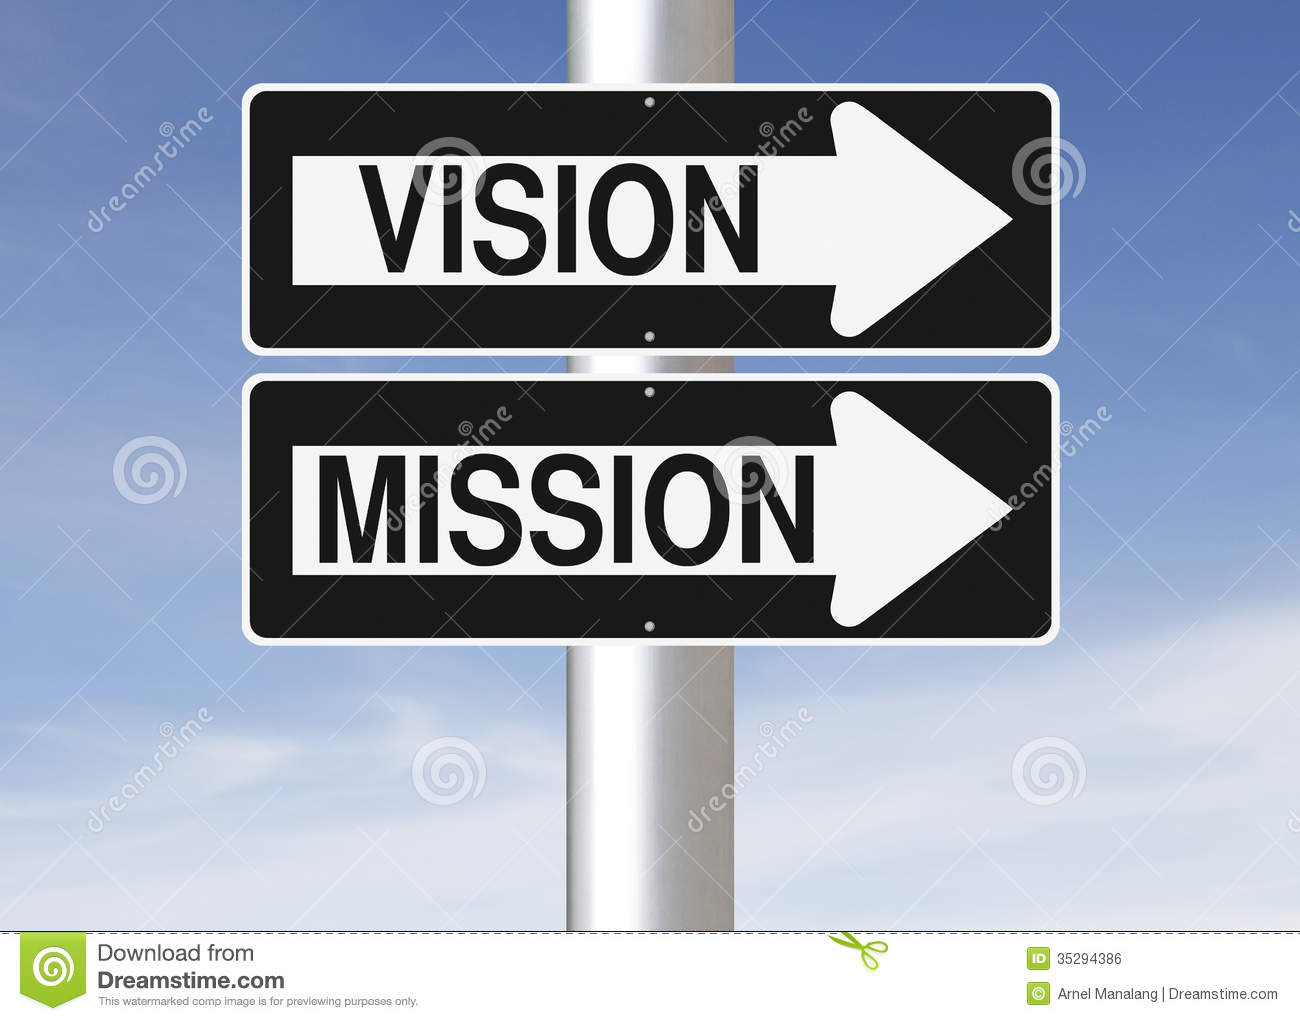 Visions and missions